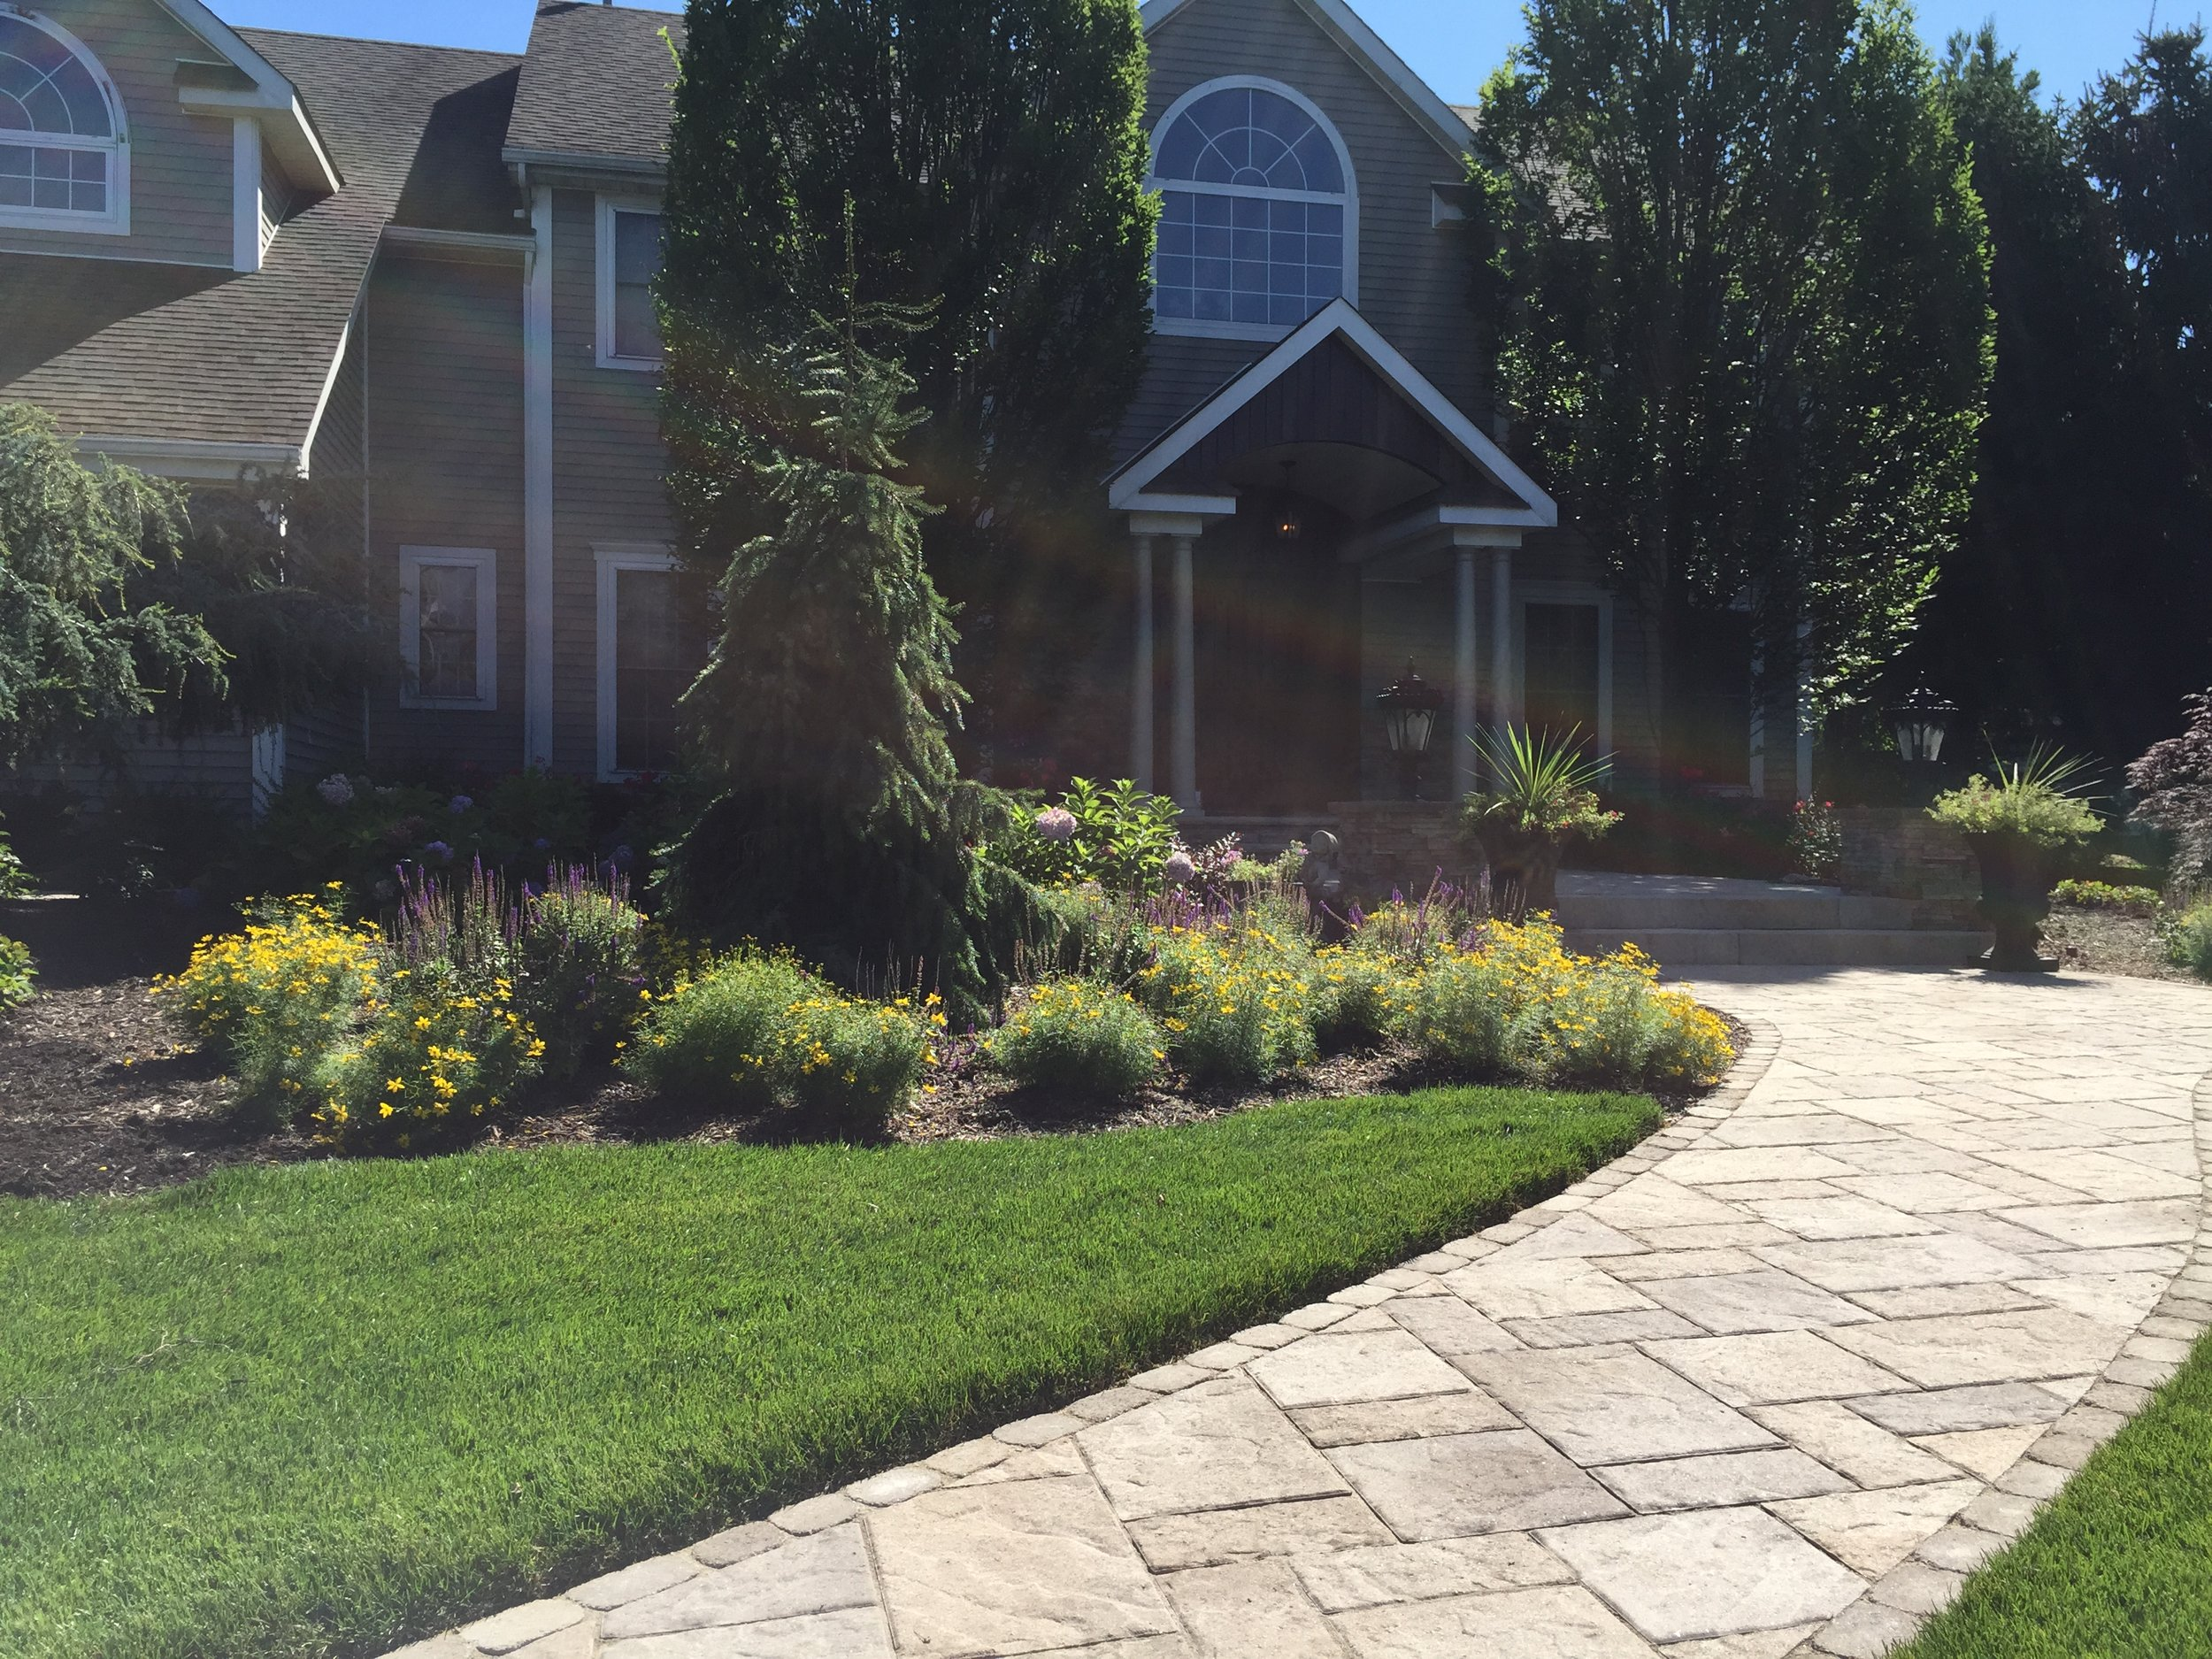 Top landscape design patio paver in Long Island, NY